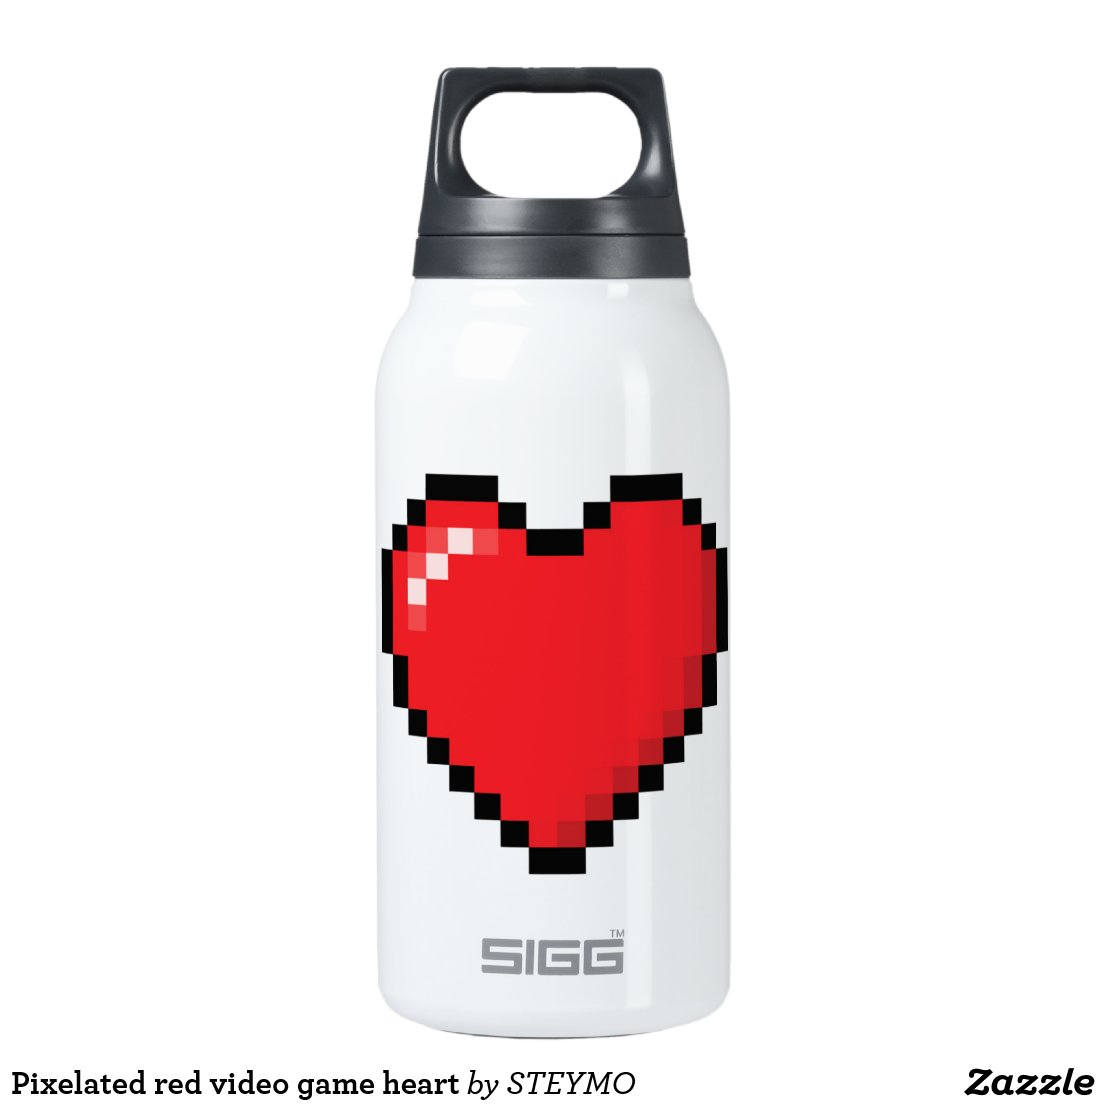 Pixelated red video game heart insulated water bottle